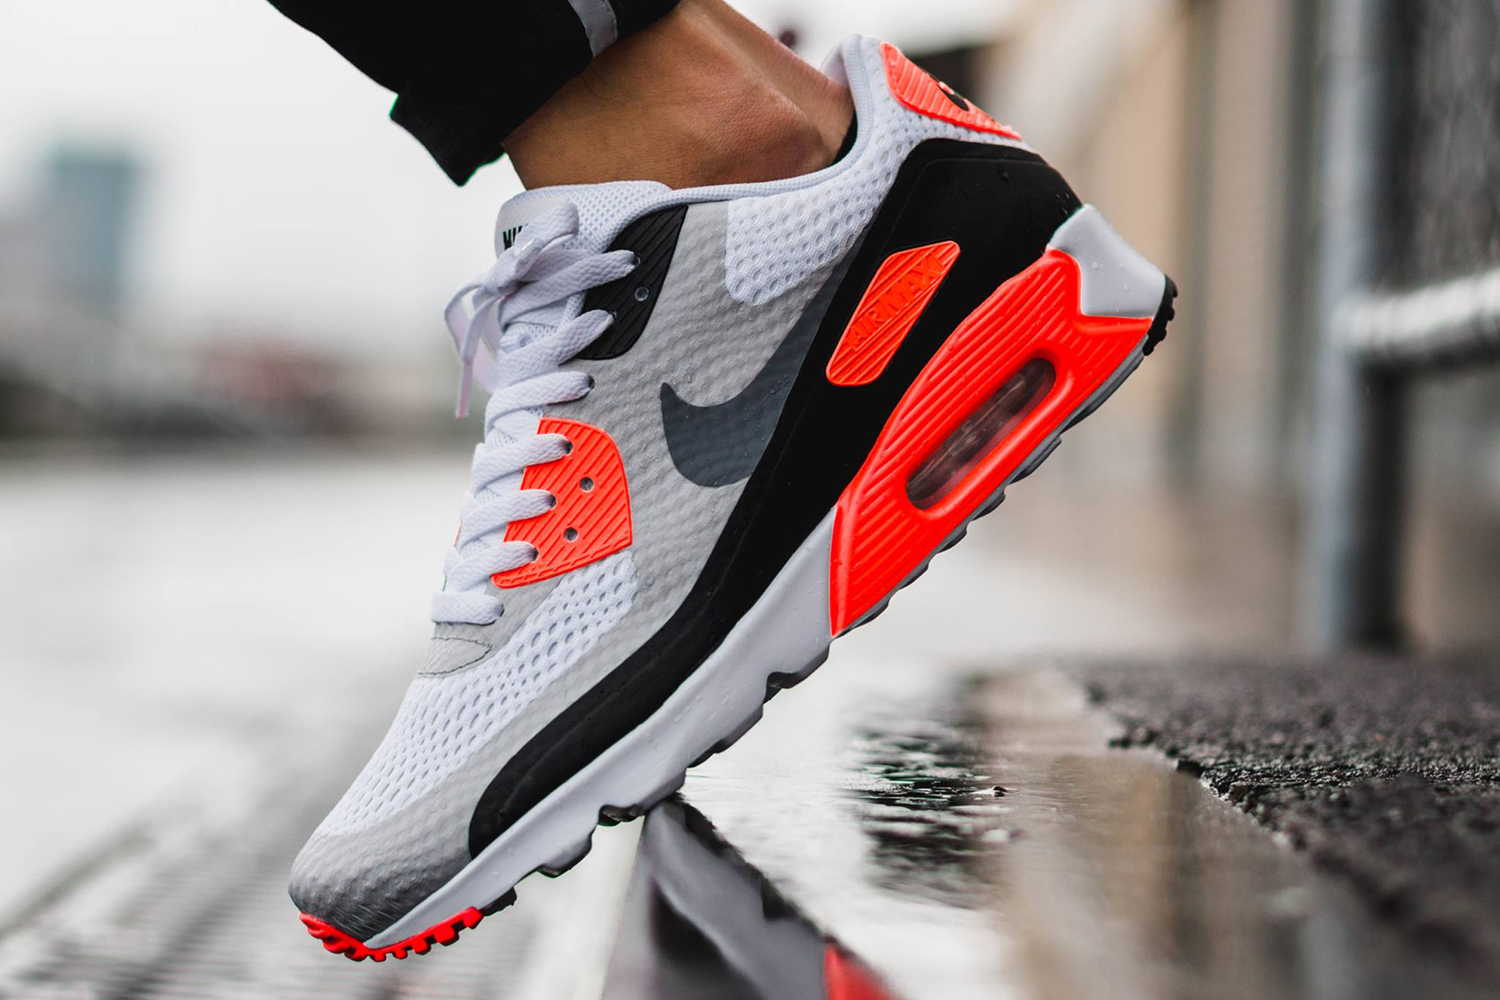 super popular 1b7e6 a06e9 nike air max 90 ultra essential infrared